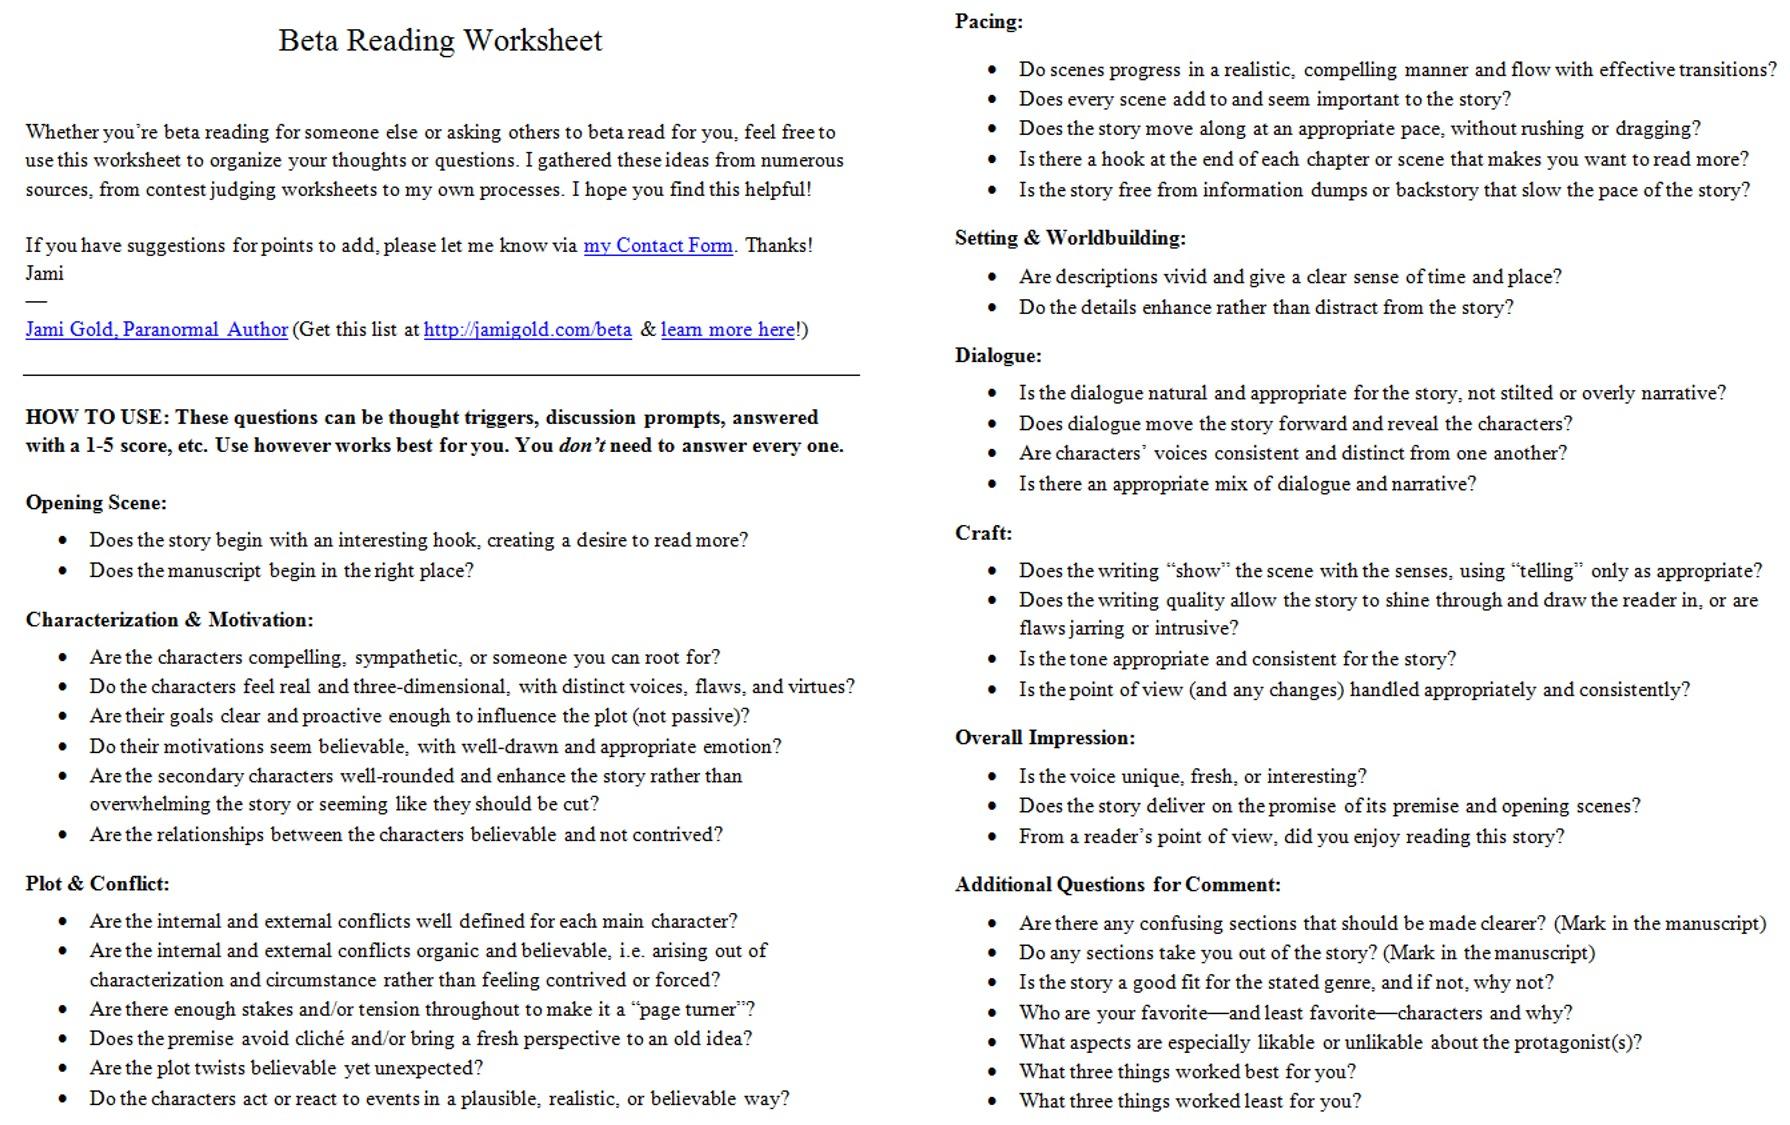 Aldiablosus  Mesmerizing Worksheets For Writers  Jami Gold Paranormal Author With Lovely Screen Shot Of The Twopage Beta Reading Worksheet With Amusing Plus  Worksheets Also Teacher Cafe Worksheets In Addition Easter Worksheets Ks And Free Printable Distributive Property Worksheets As Well As Rectangular Prism Worksheets Additionally Pdf Worksheets For Kindergarten From Jamigoldcom With Aldiablosus  Lovely Worksheets For Writers  Jami Gold Paranormal Author With Amusing Screen Shot Of The Twopage Beta Reading Worksheet And Mesmerizing Plus  Worksheets Also Teacher Cafe Worksheets In Addition Easter Worksheets Ks From Jamigoldcom